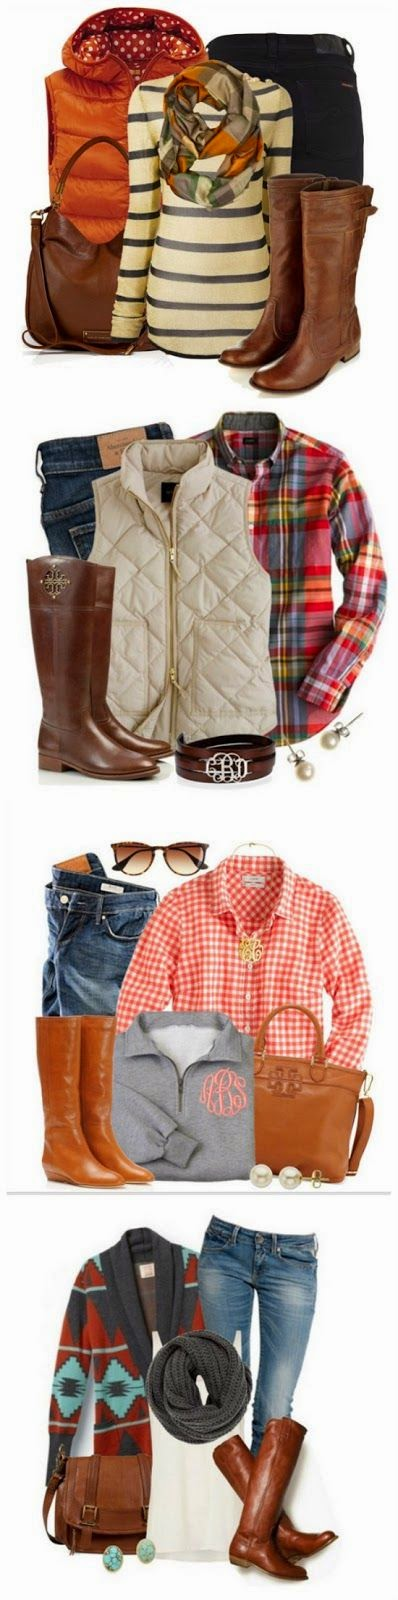 4 awesome outfits